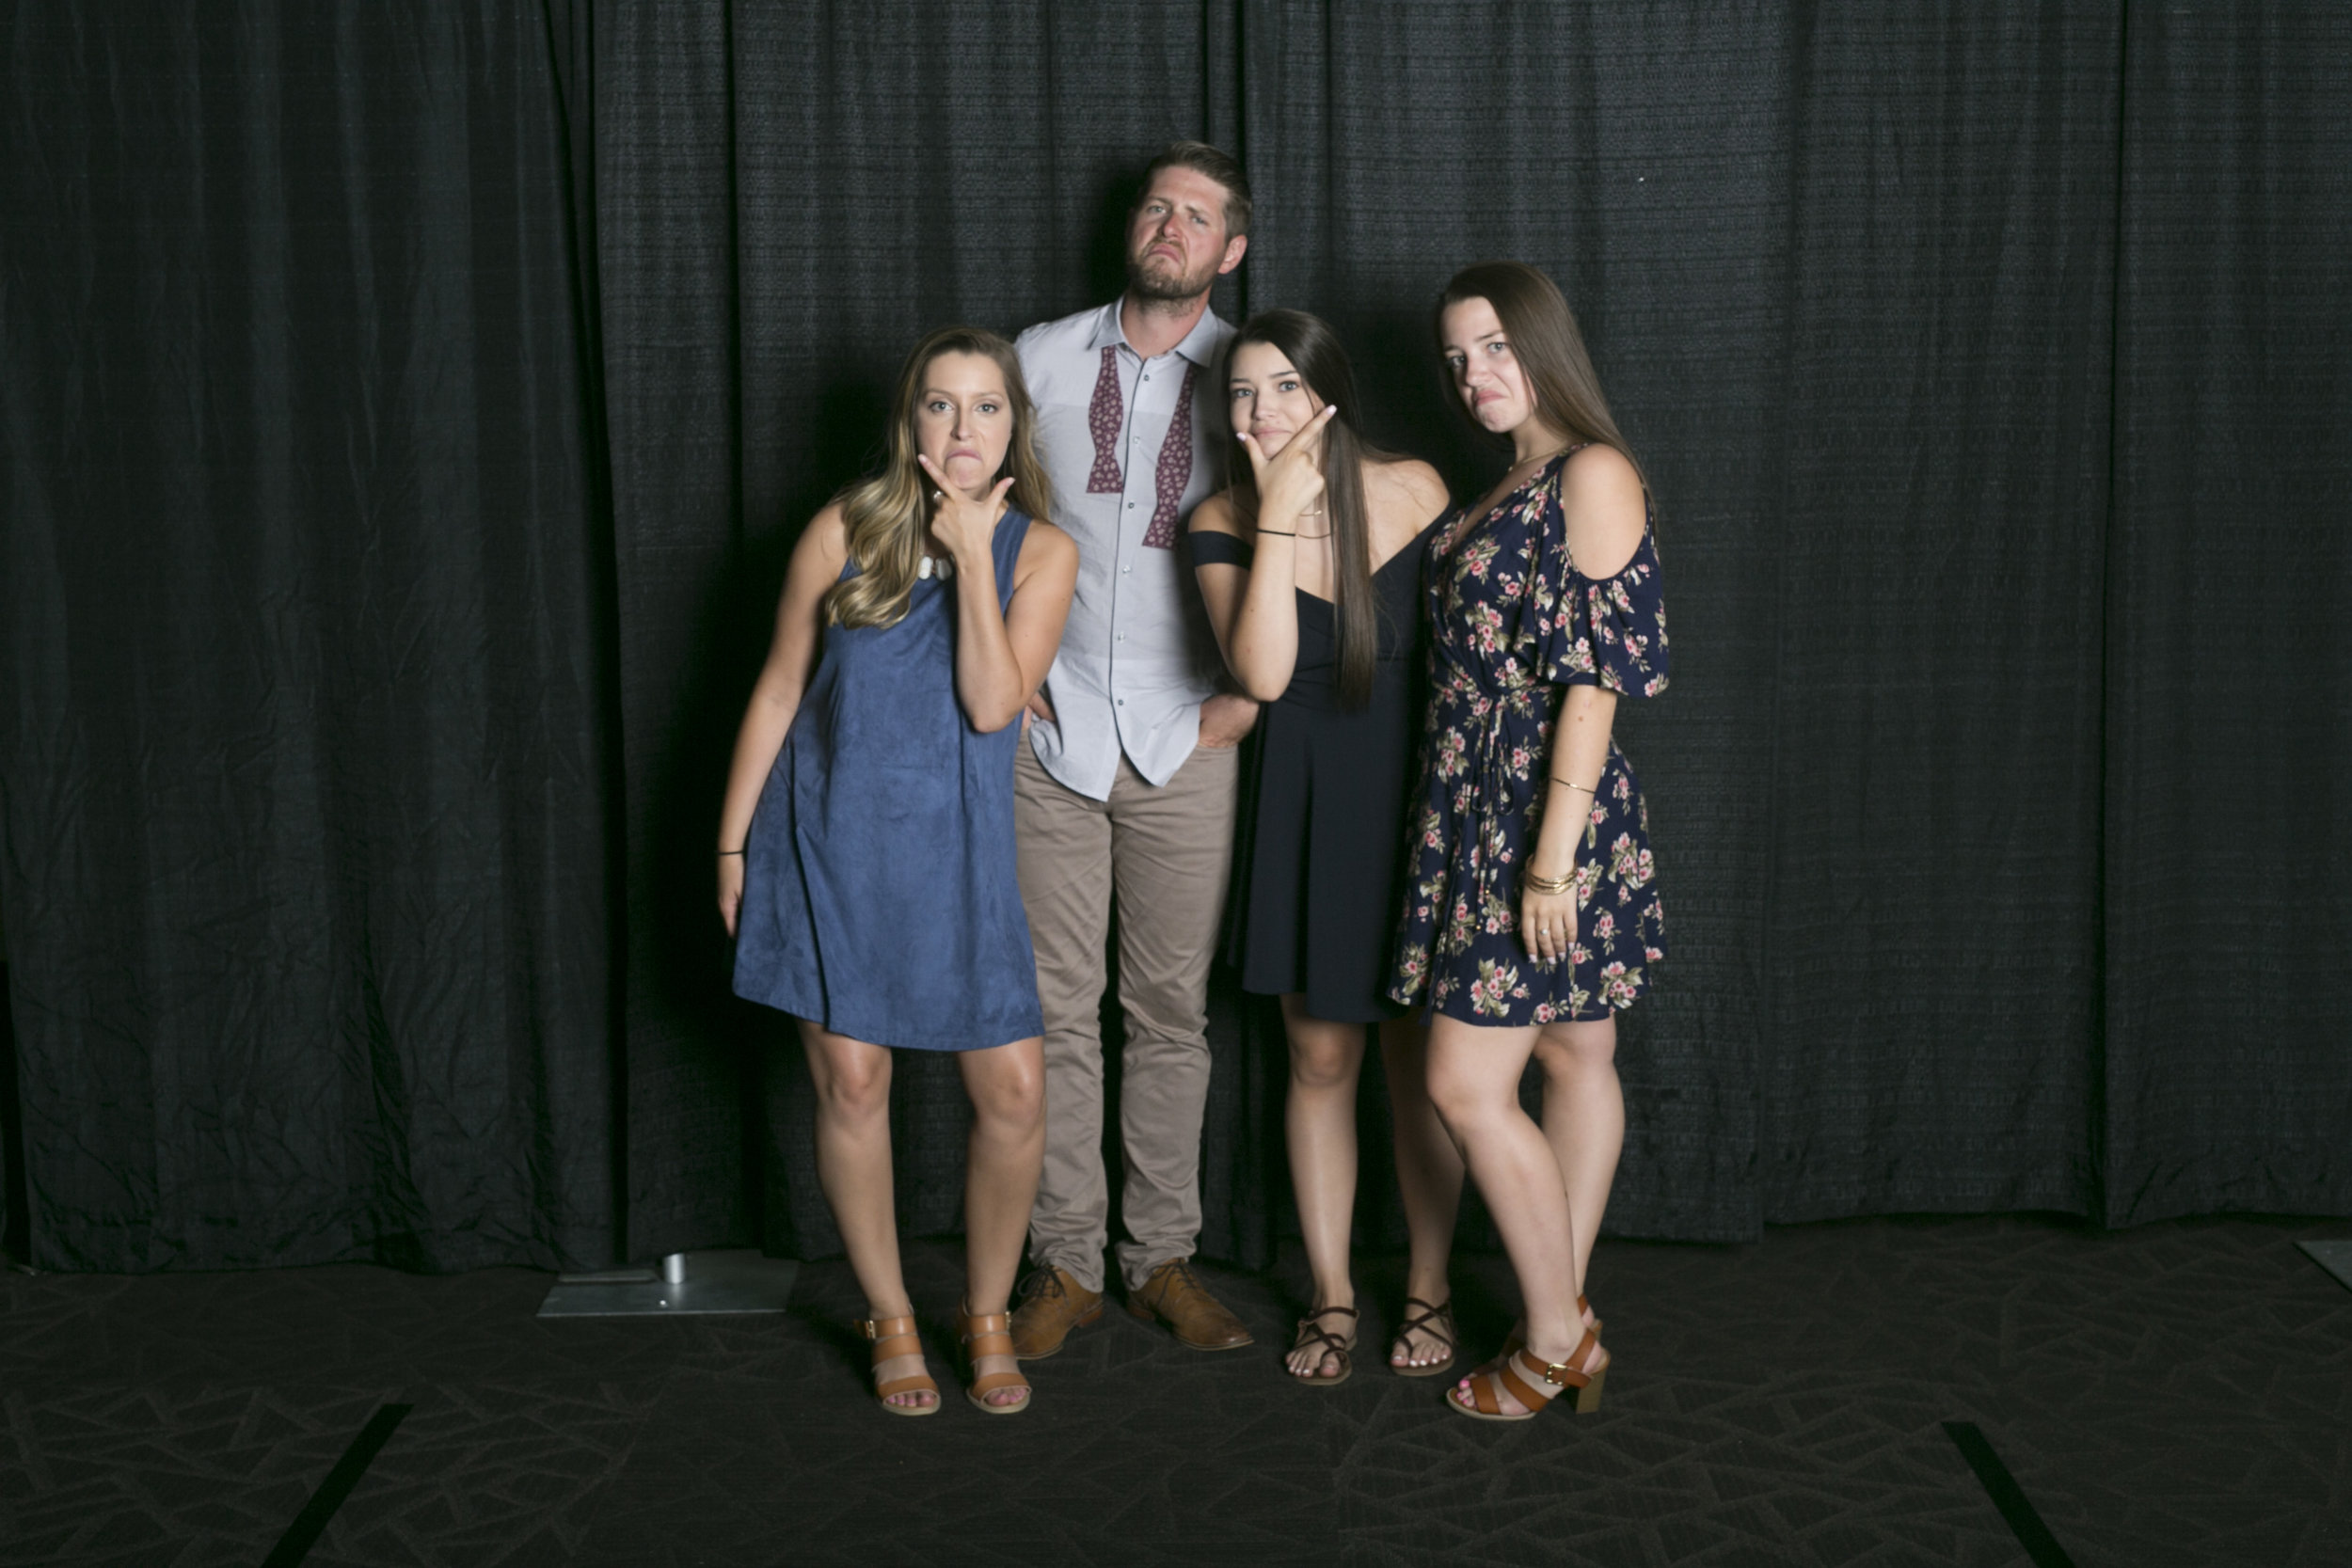 wedding photo booth-140.jpg